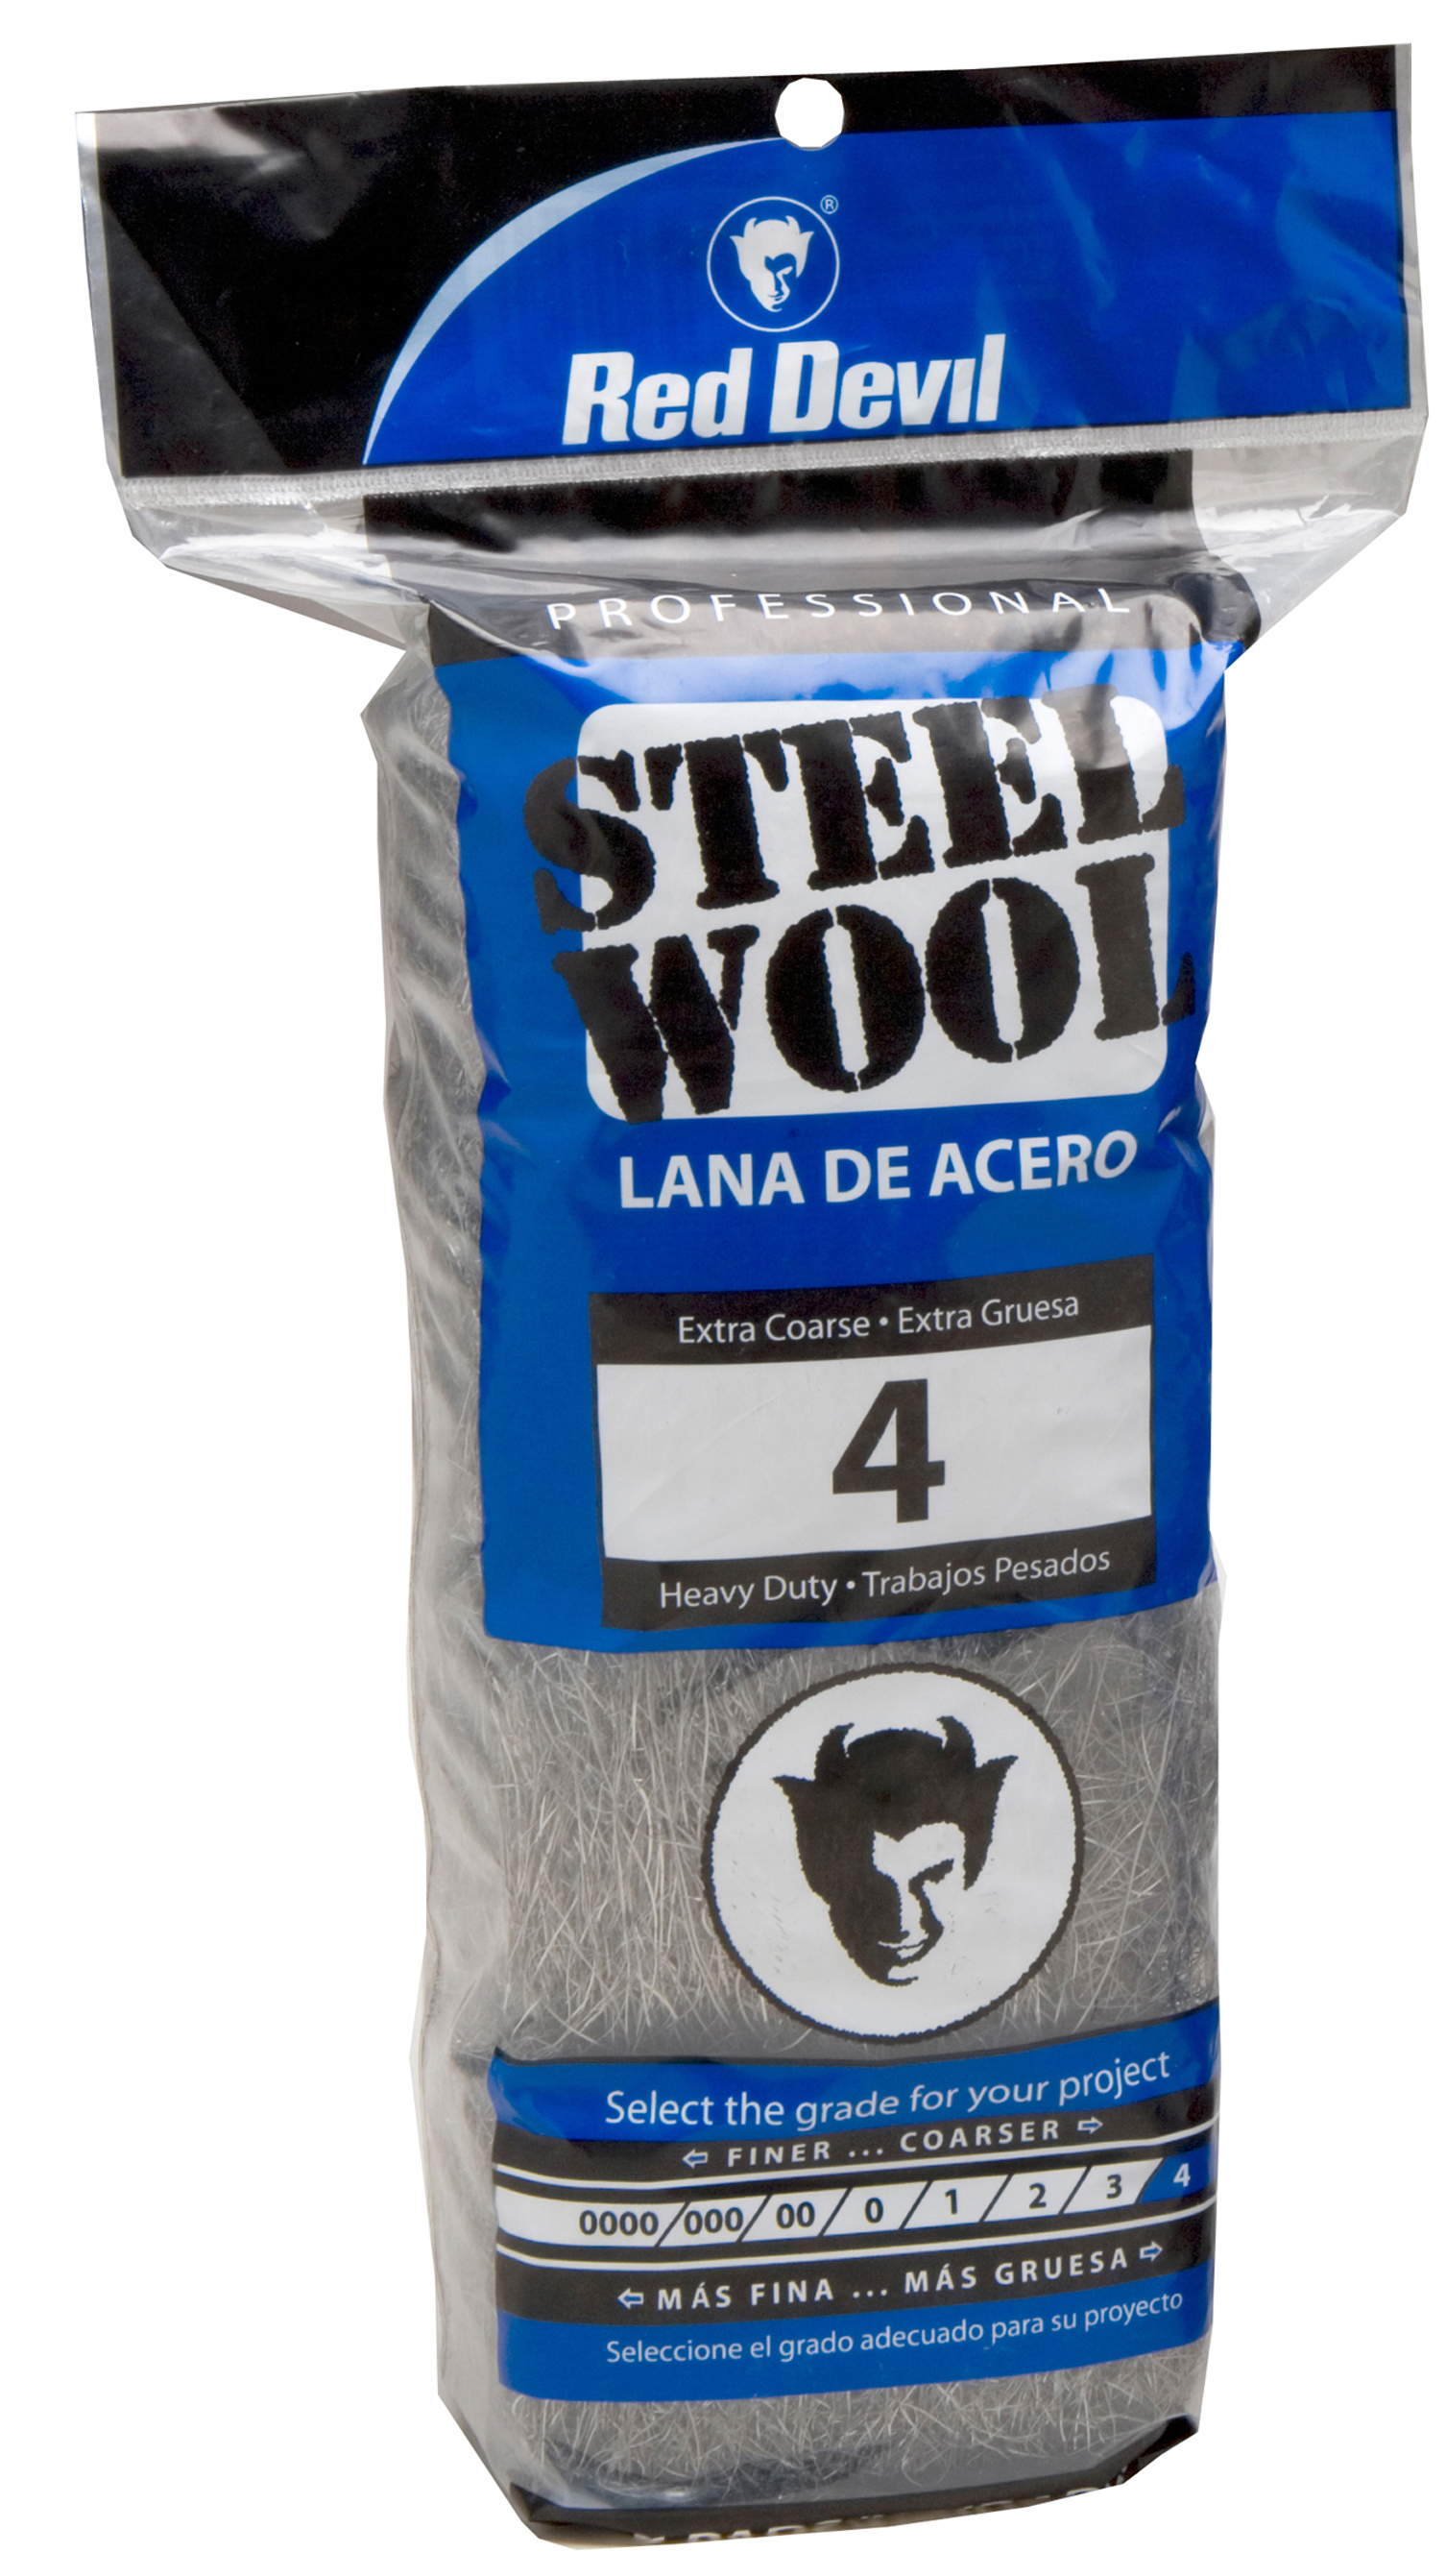 Red Devil 0327 Steel Wool 4 Extra Coarse 8 Pads